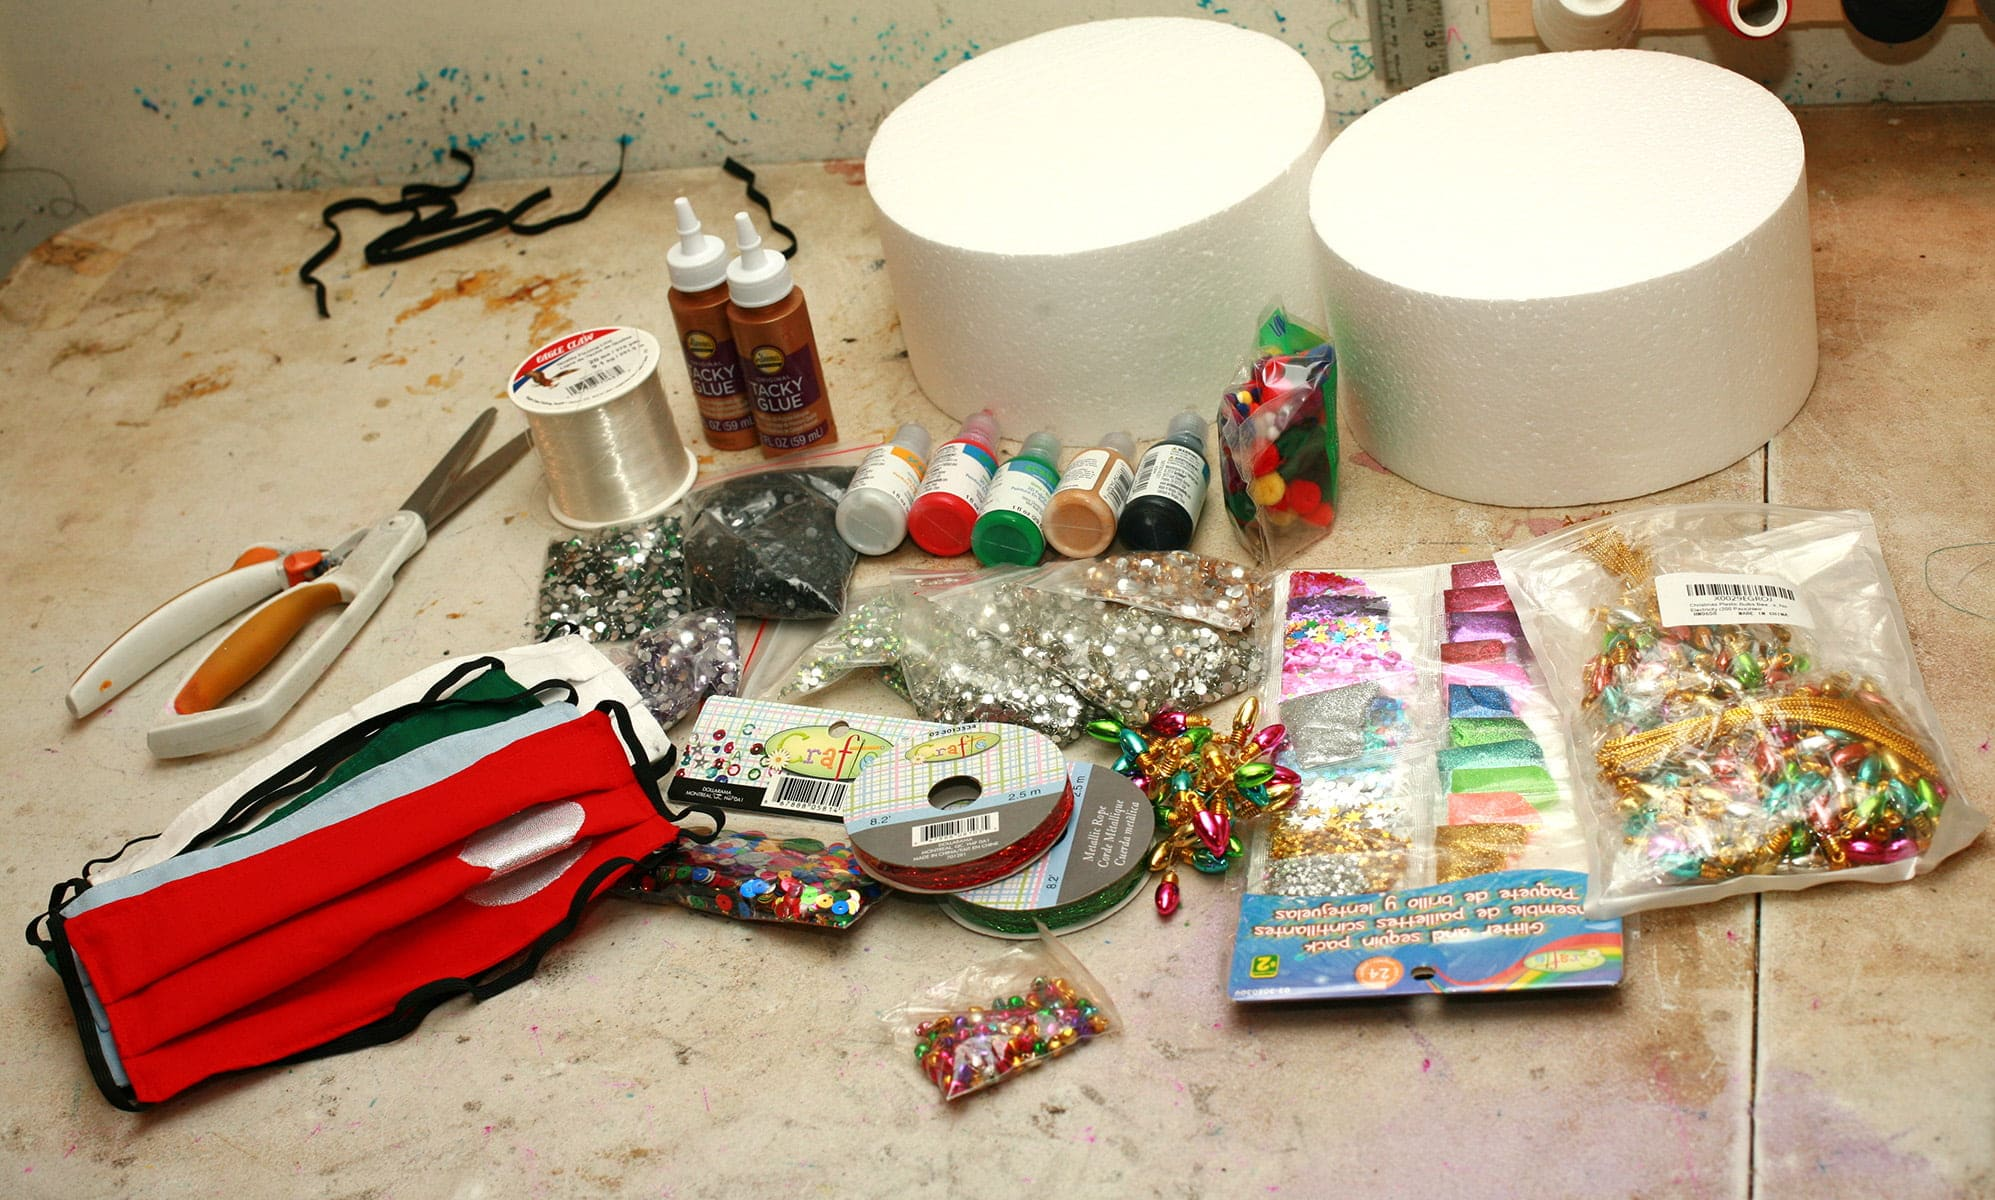 A selection of craft supplies is arranged on a work surface. There are paints, glitters, glues, sequins, beads, and more.